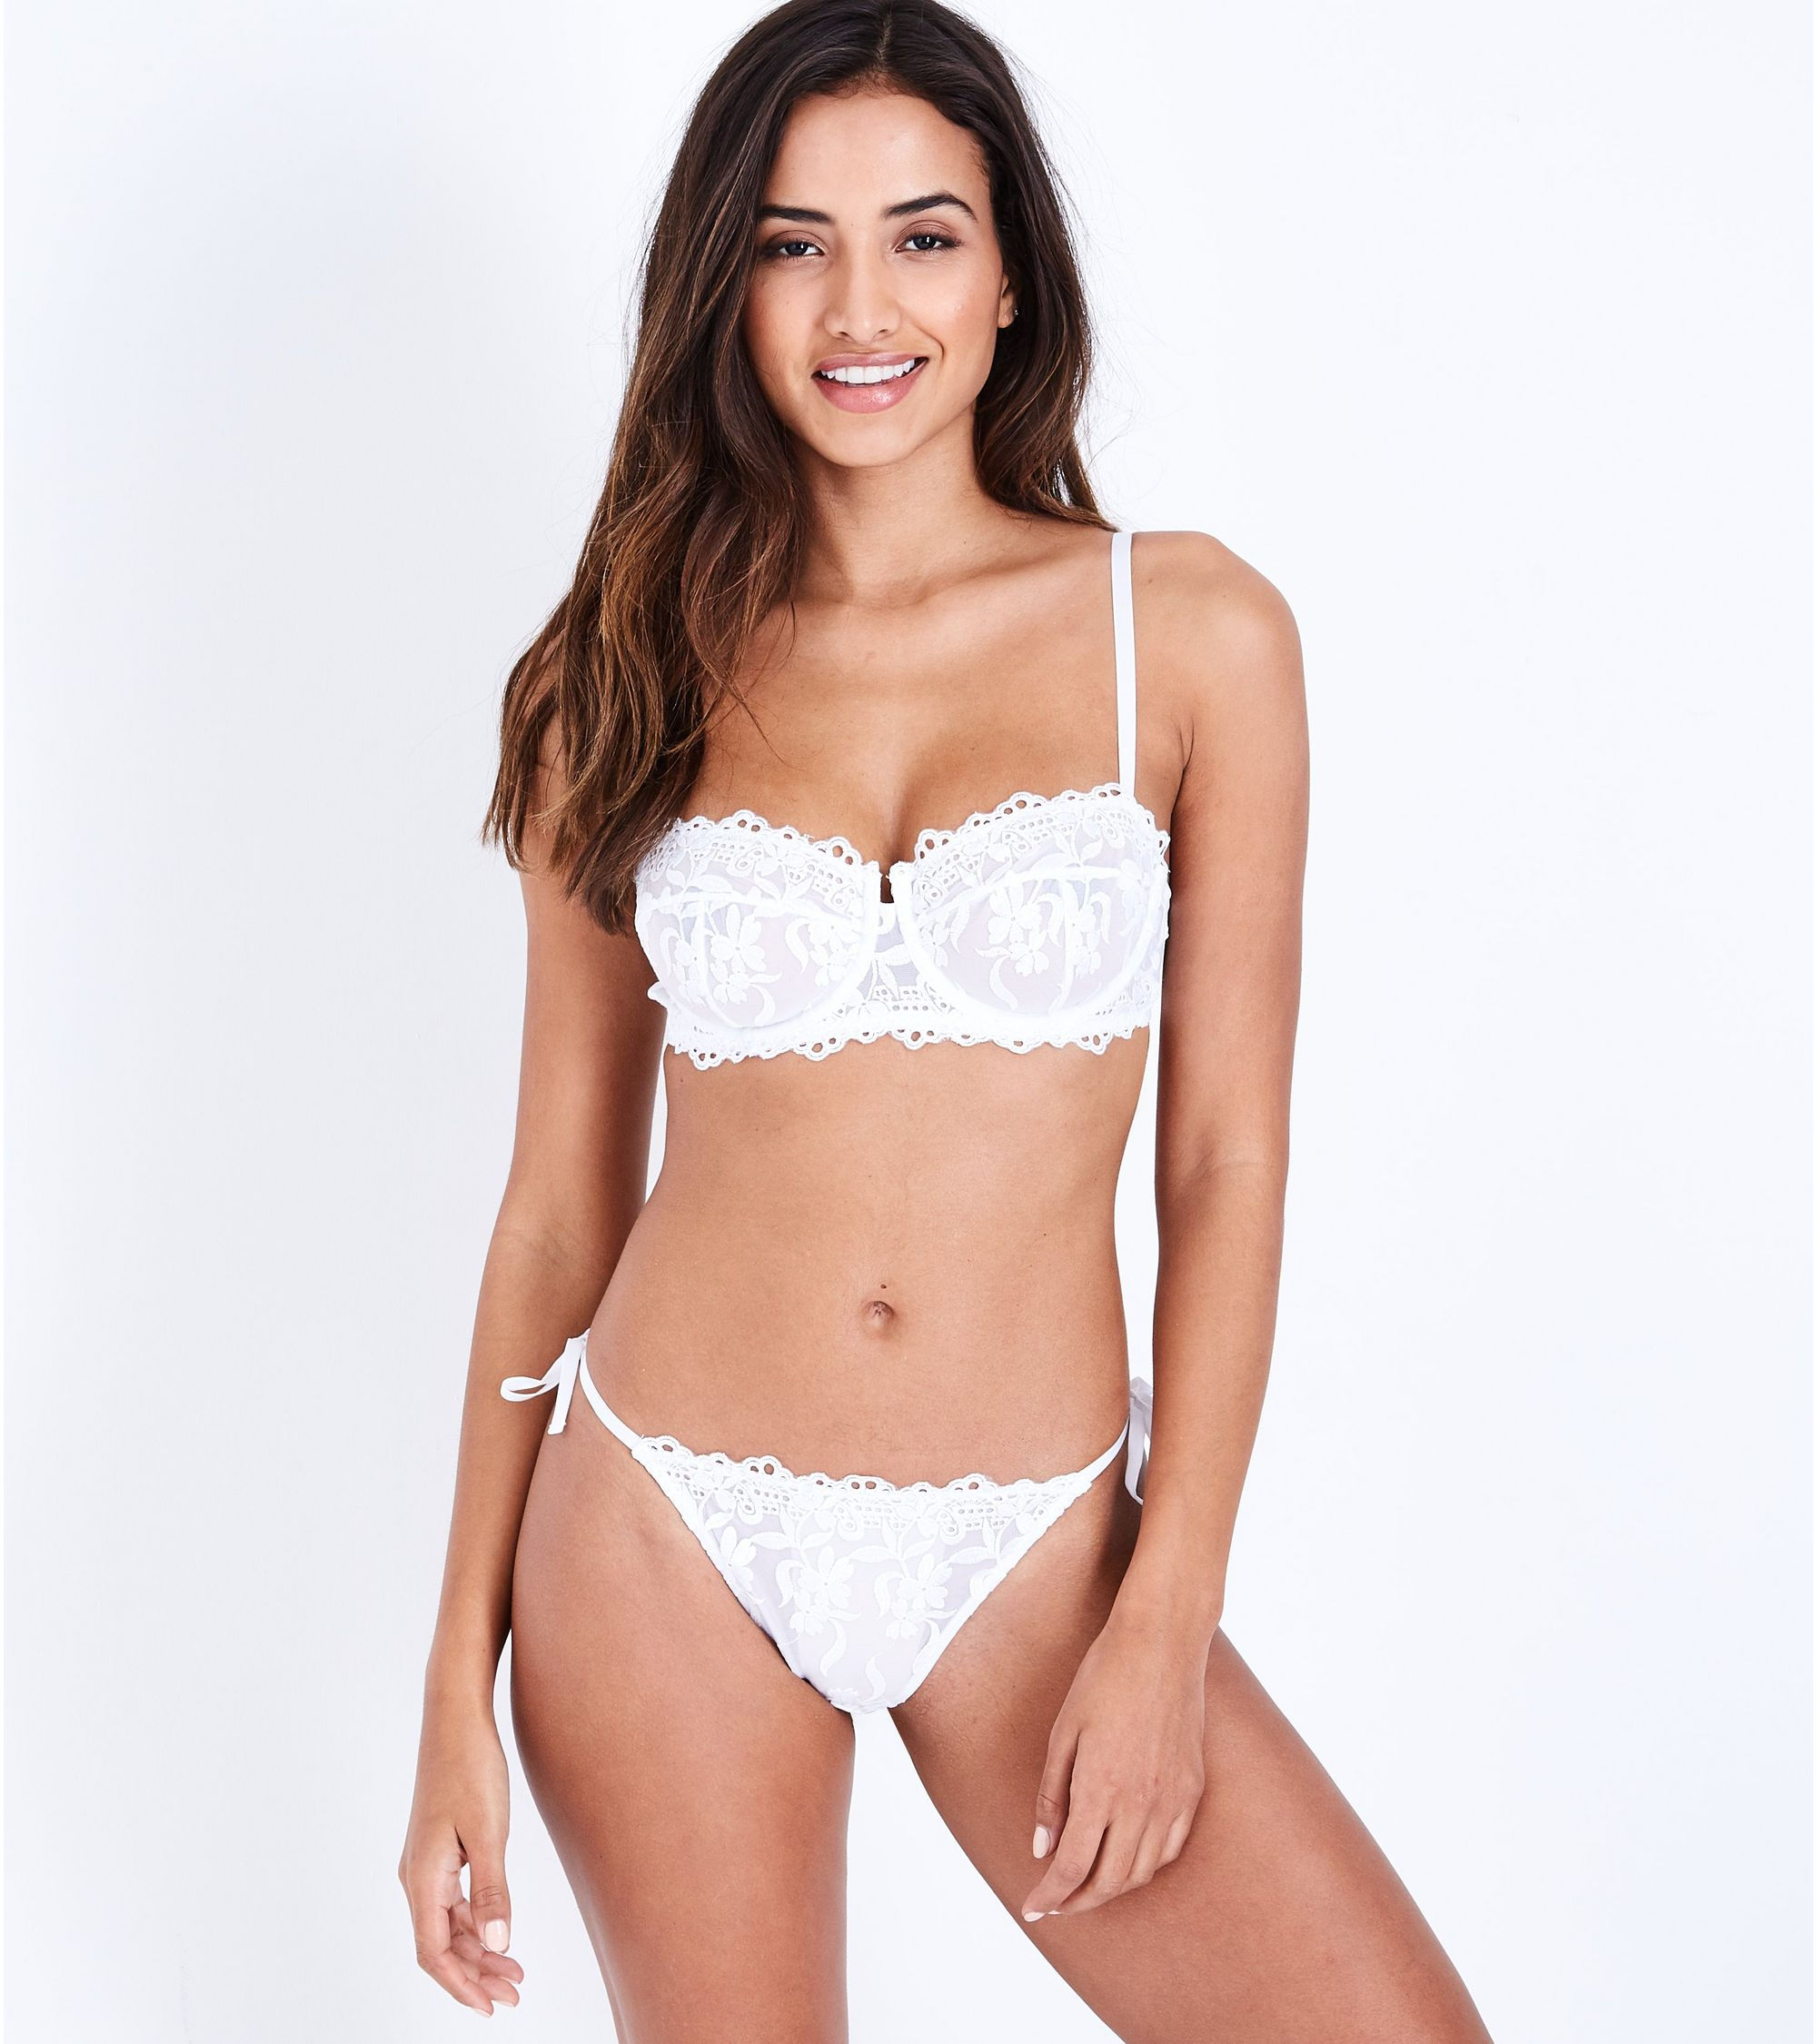 e76bcb78cc4 New Look White Lace Floral Embroidered Tie Side Thong at £5.99 ...